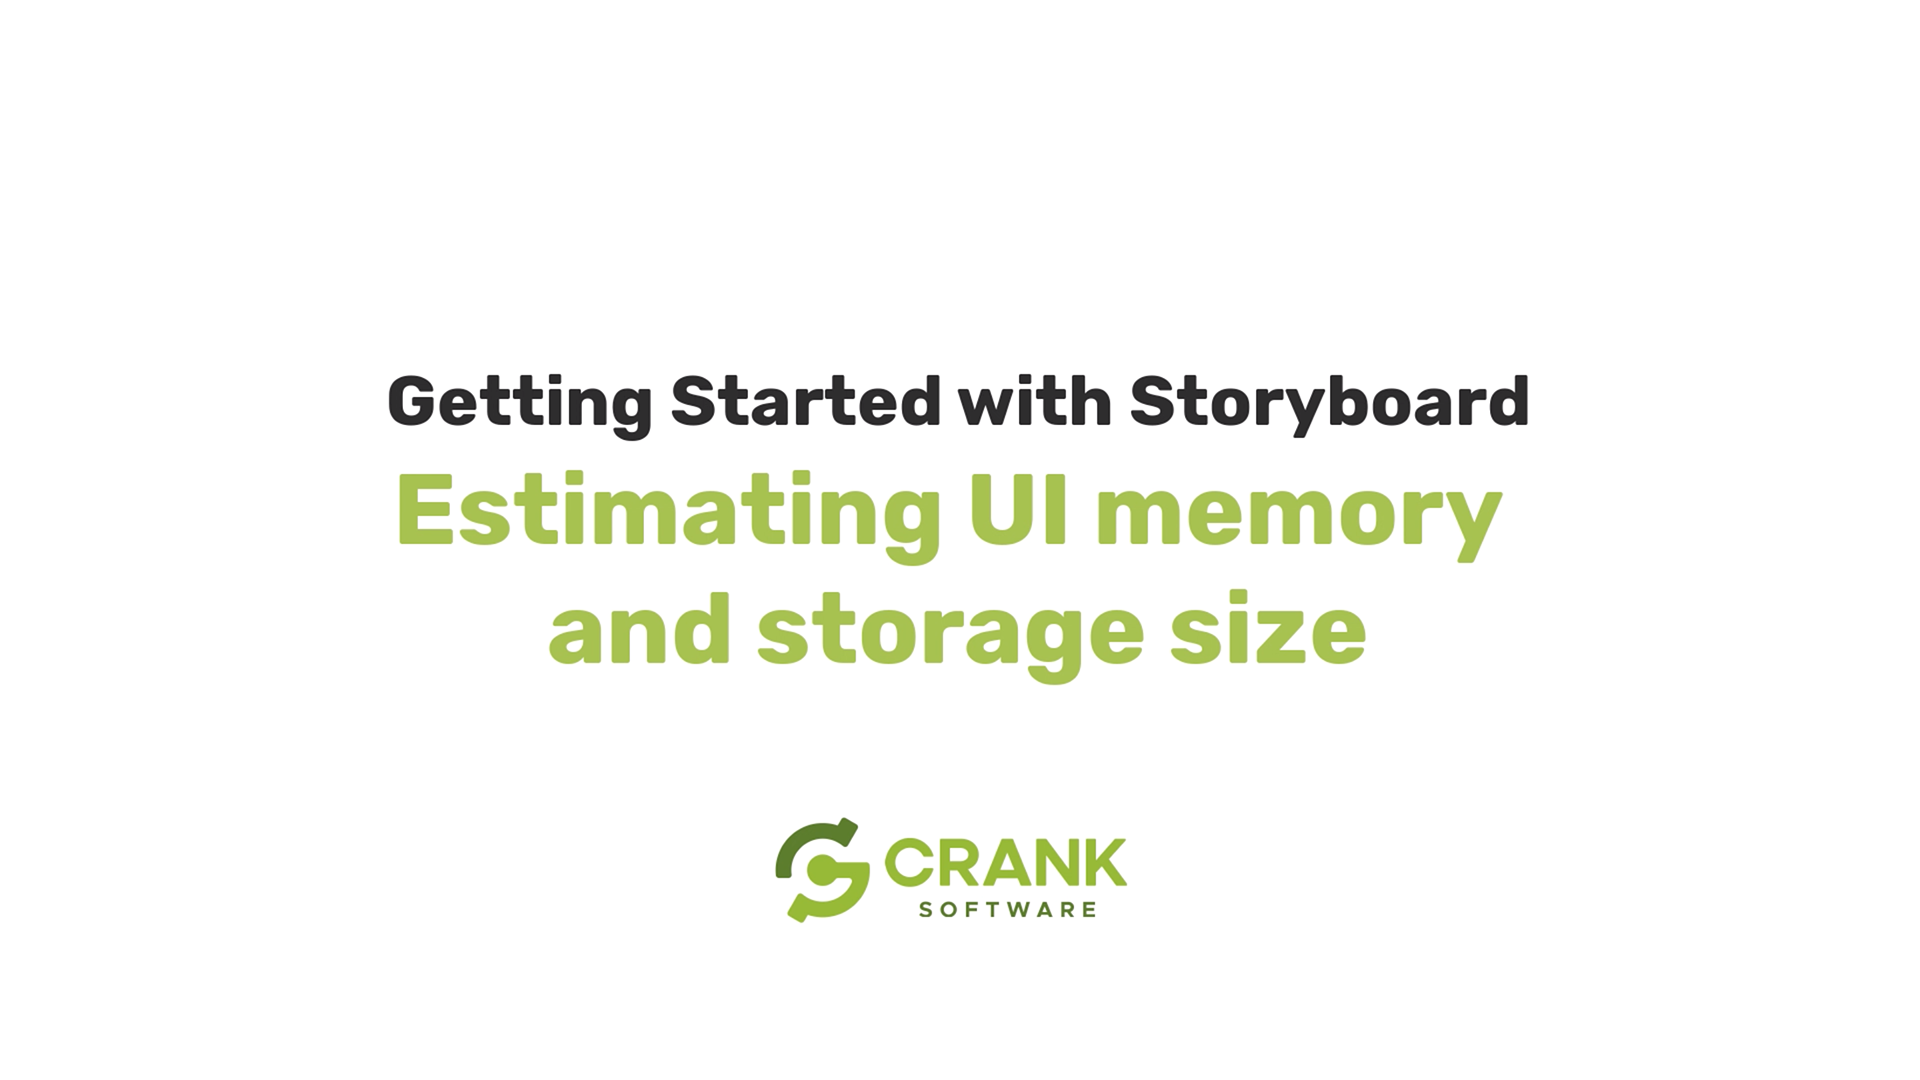 Crank-Storyboard-Estimating-UI-memory-and-storage-size